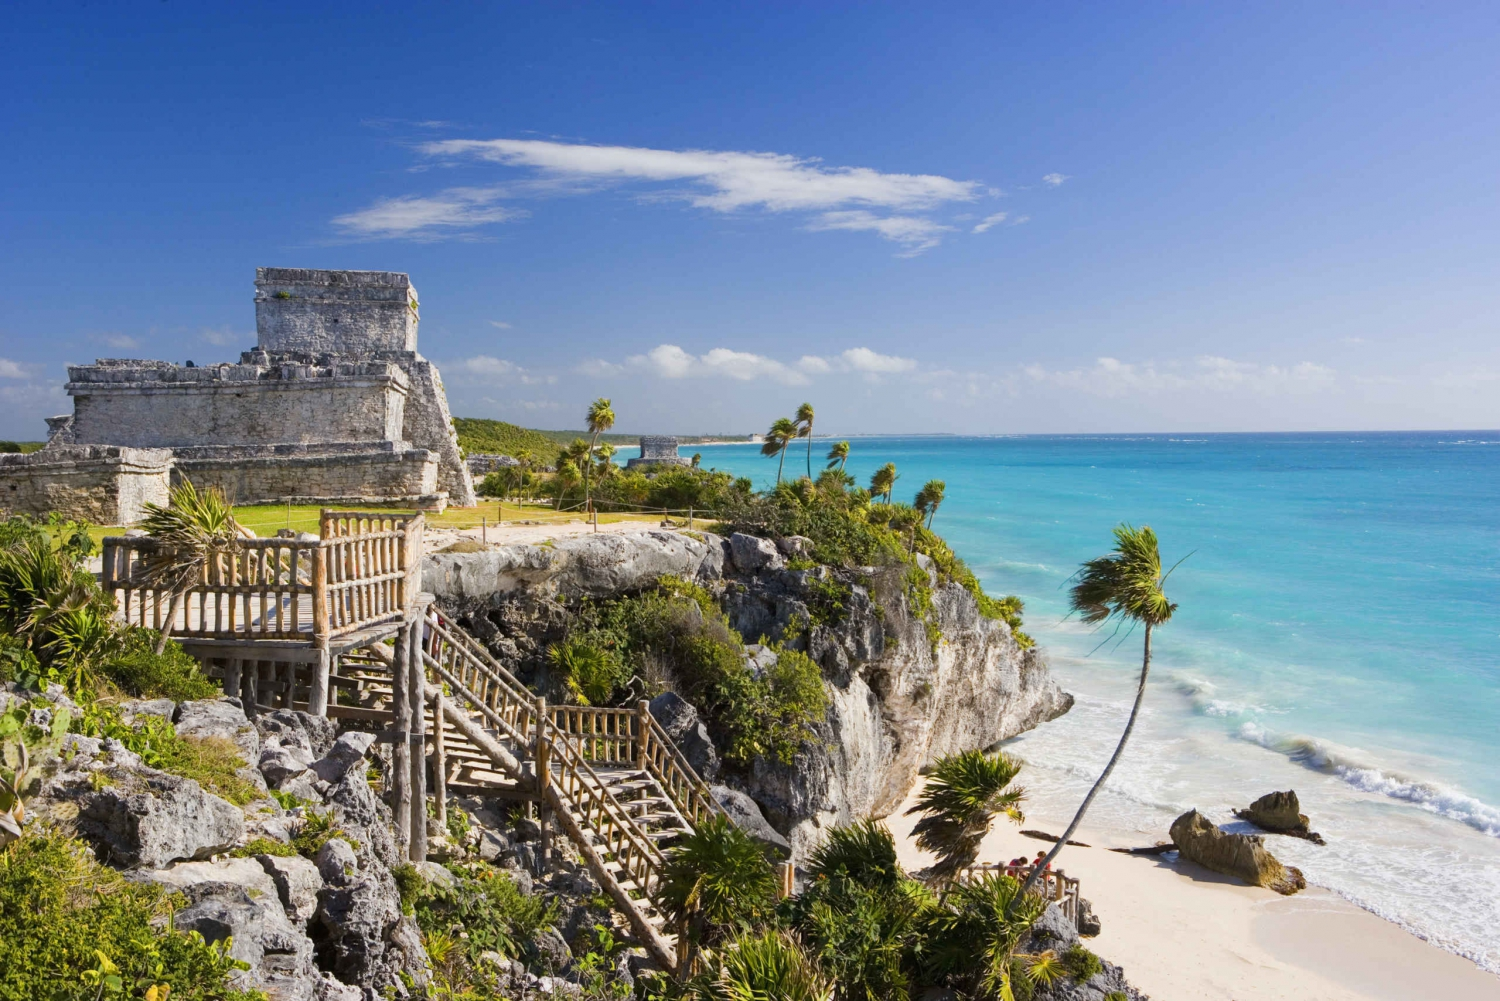 Tulum, Cobá and Hilario Cave Day Trip with Transfer Options